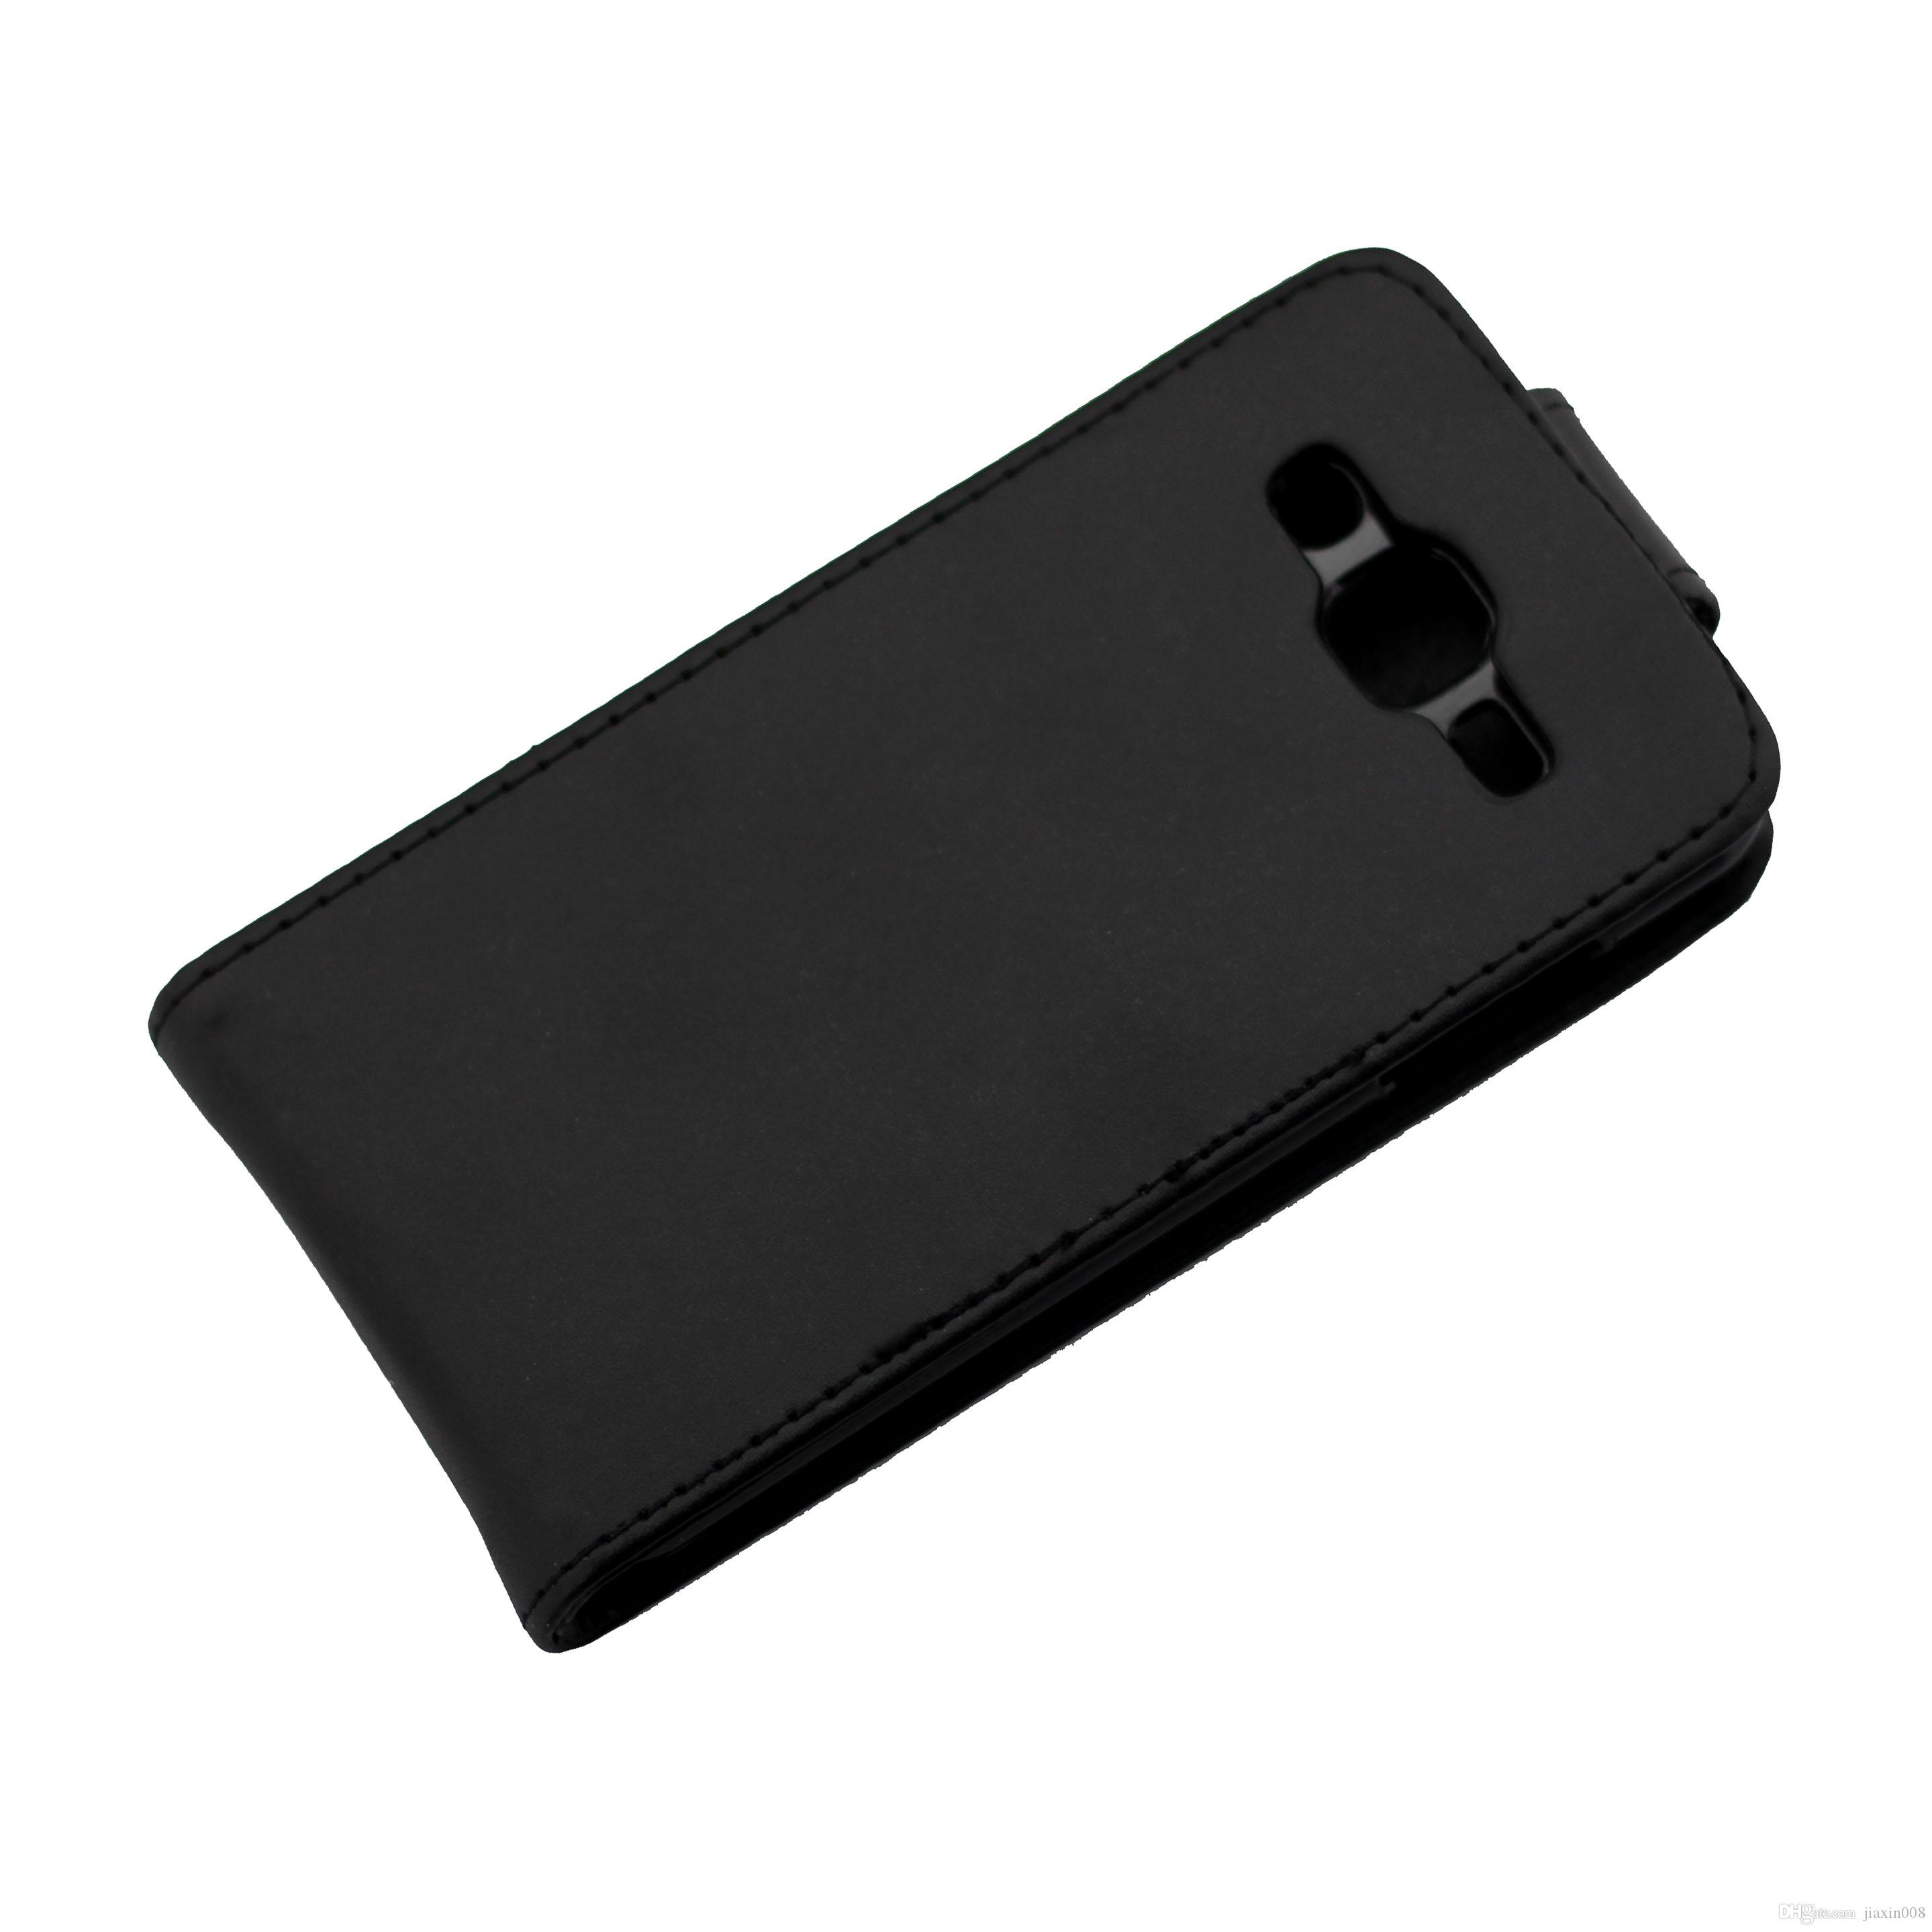 Phone Bags Flip Cover For Samsung Galaxy J2 J200 phone case Back coque PU leather Flip Vertical Up-Down Open skin pouch Phone Cover